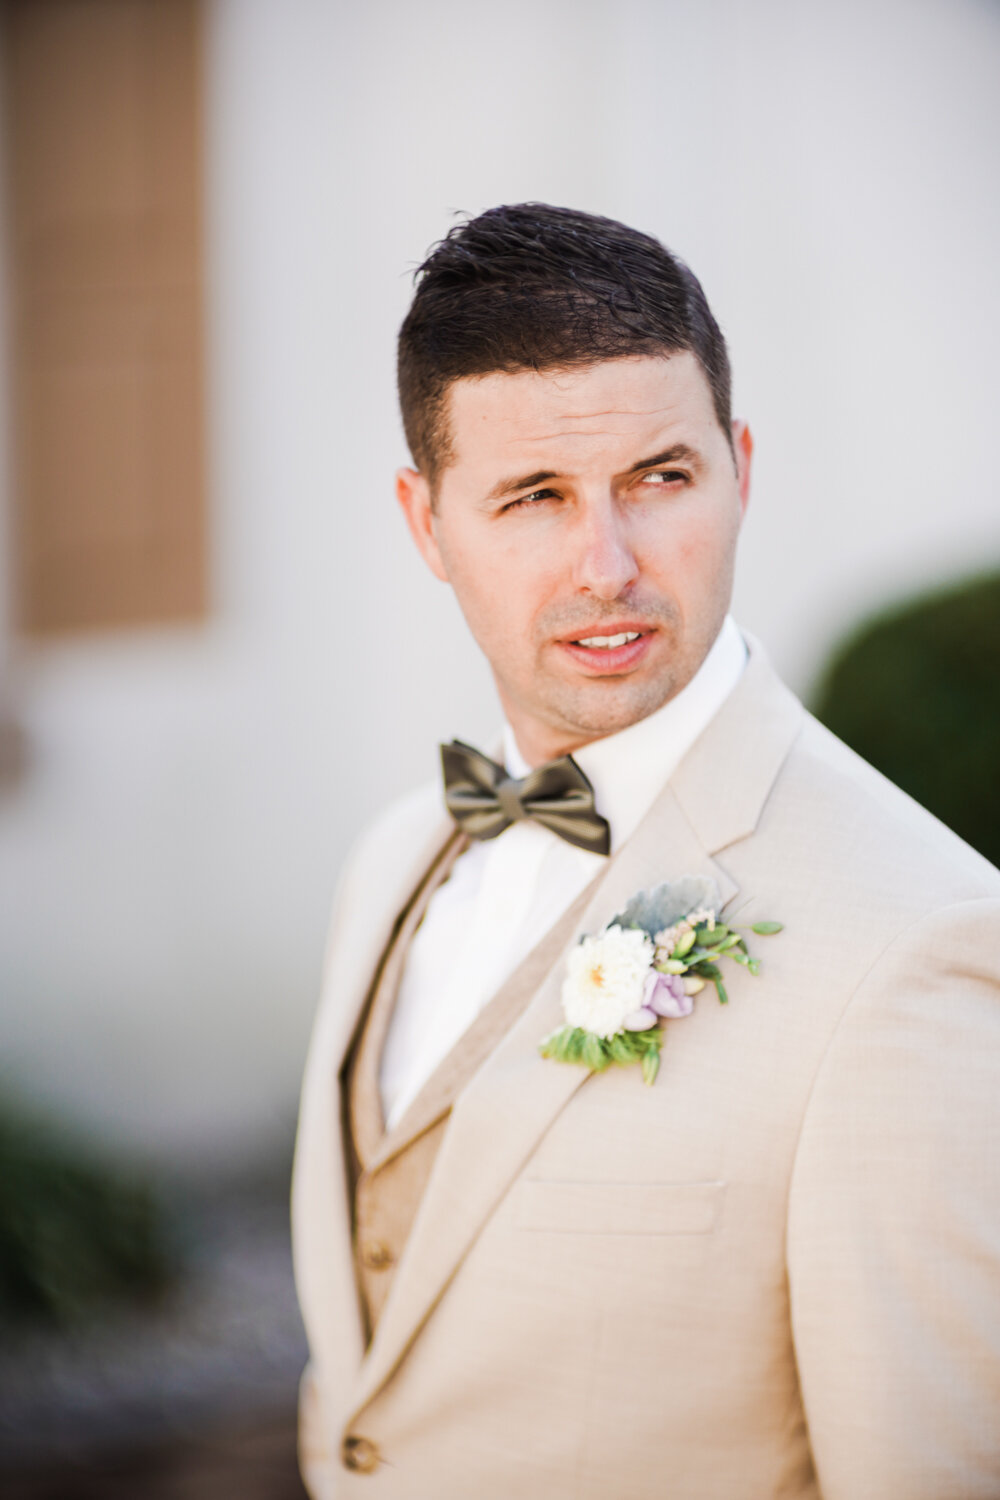 Candid image of a groom at a wedding